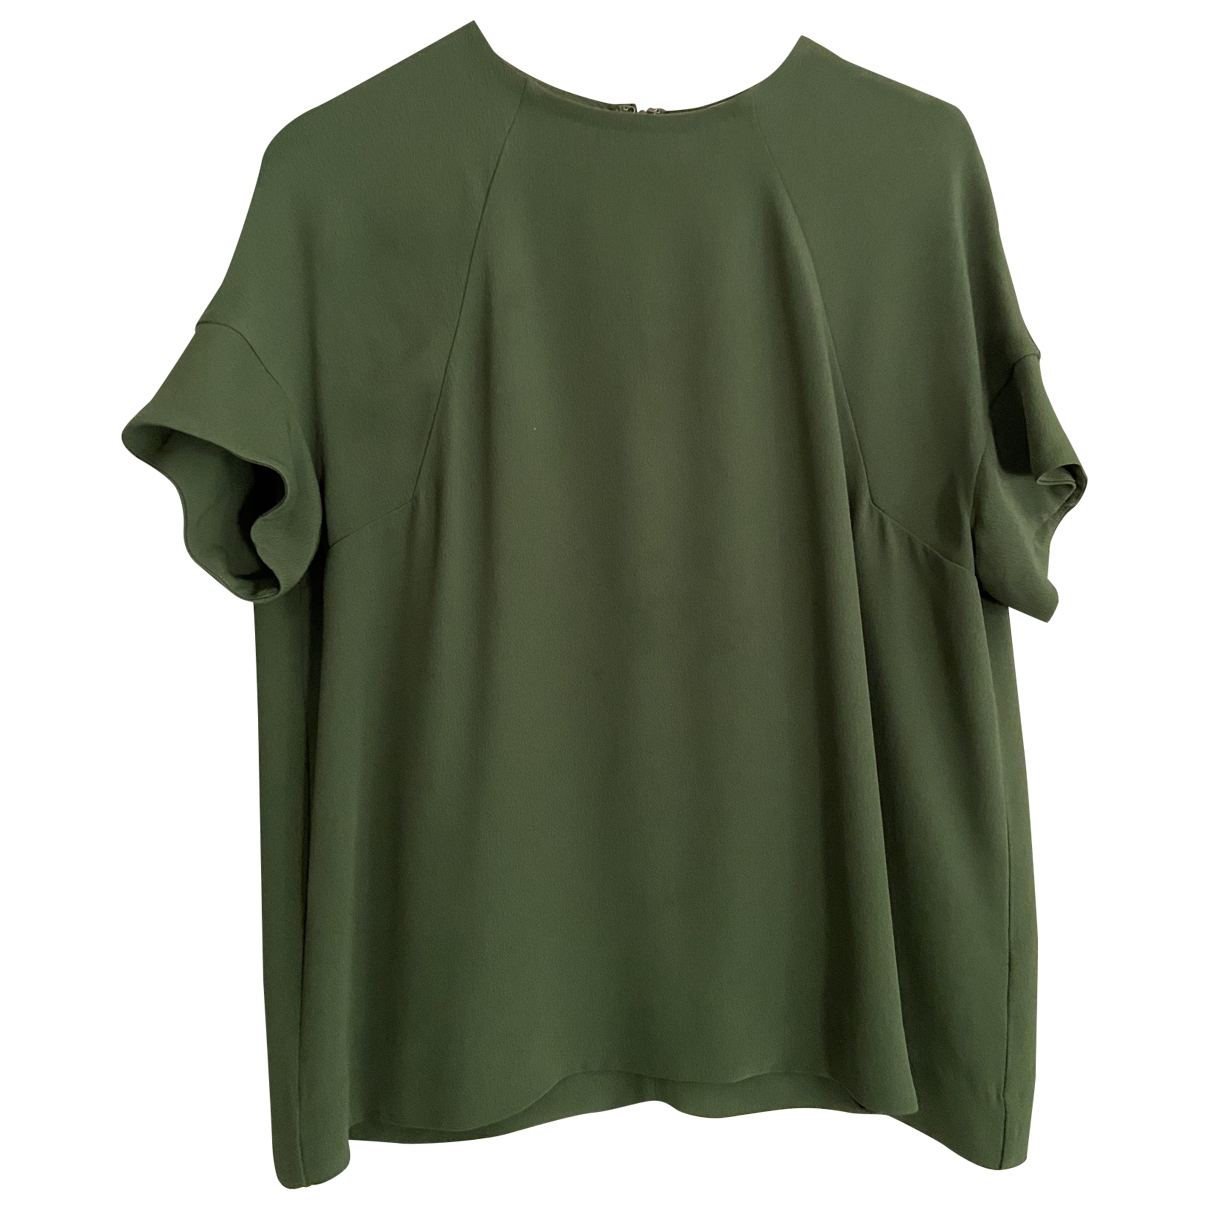 Cos \N Green  top for Women 34 FR